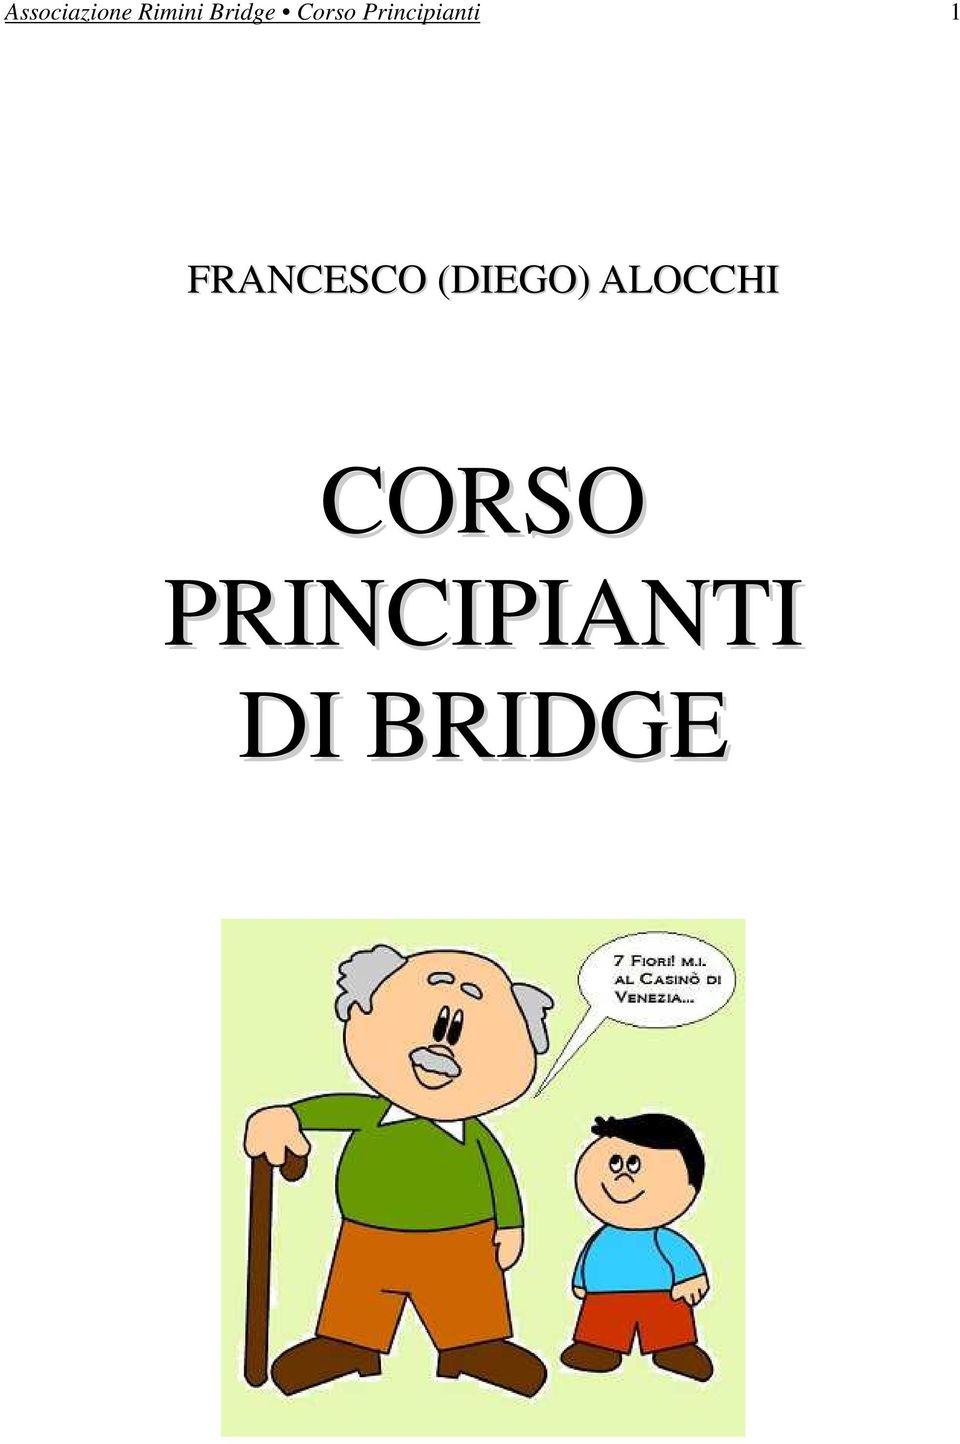 1 FRANCESCO (DIEGO)